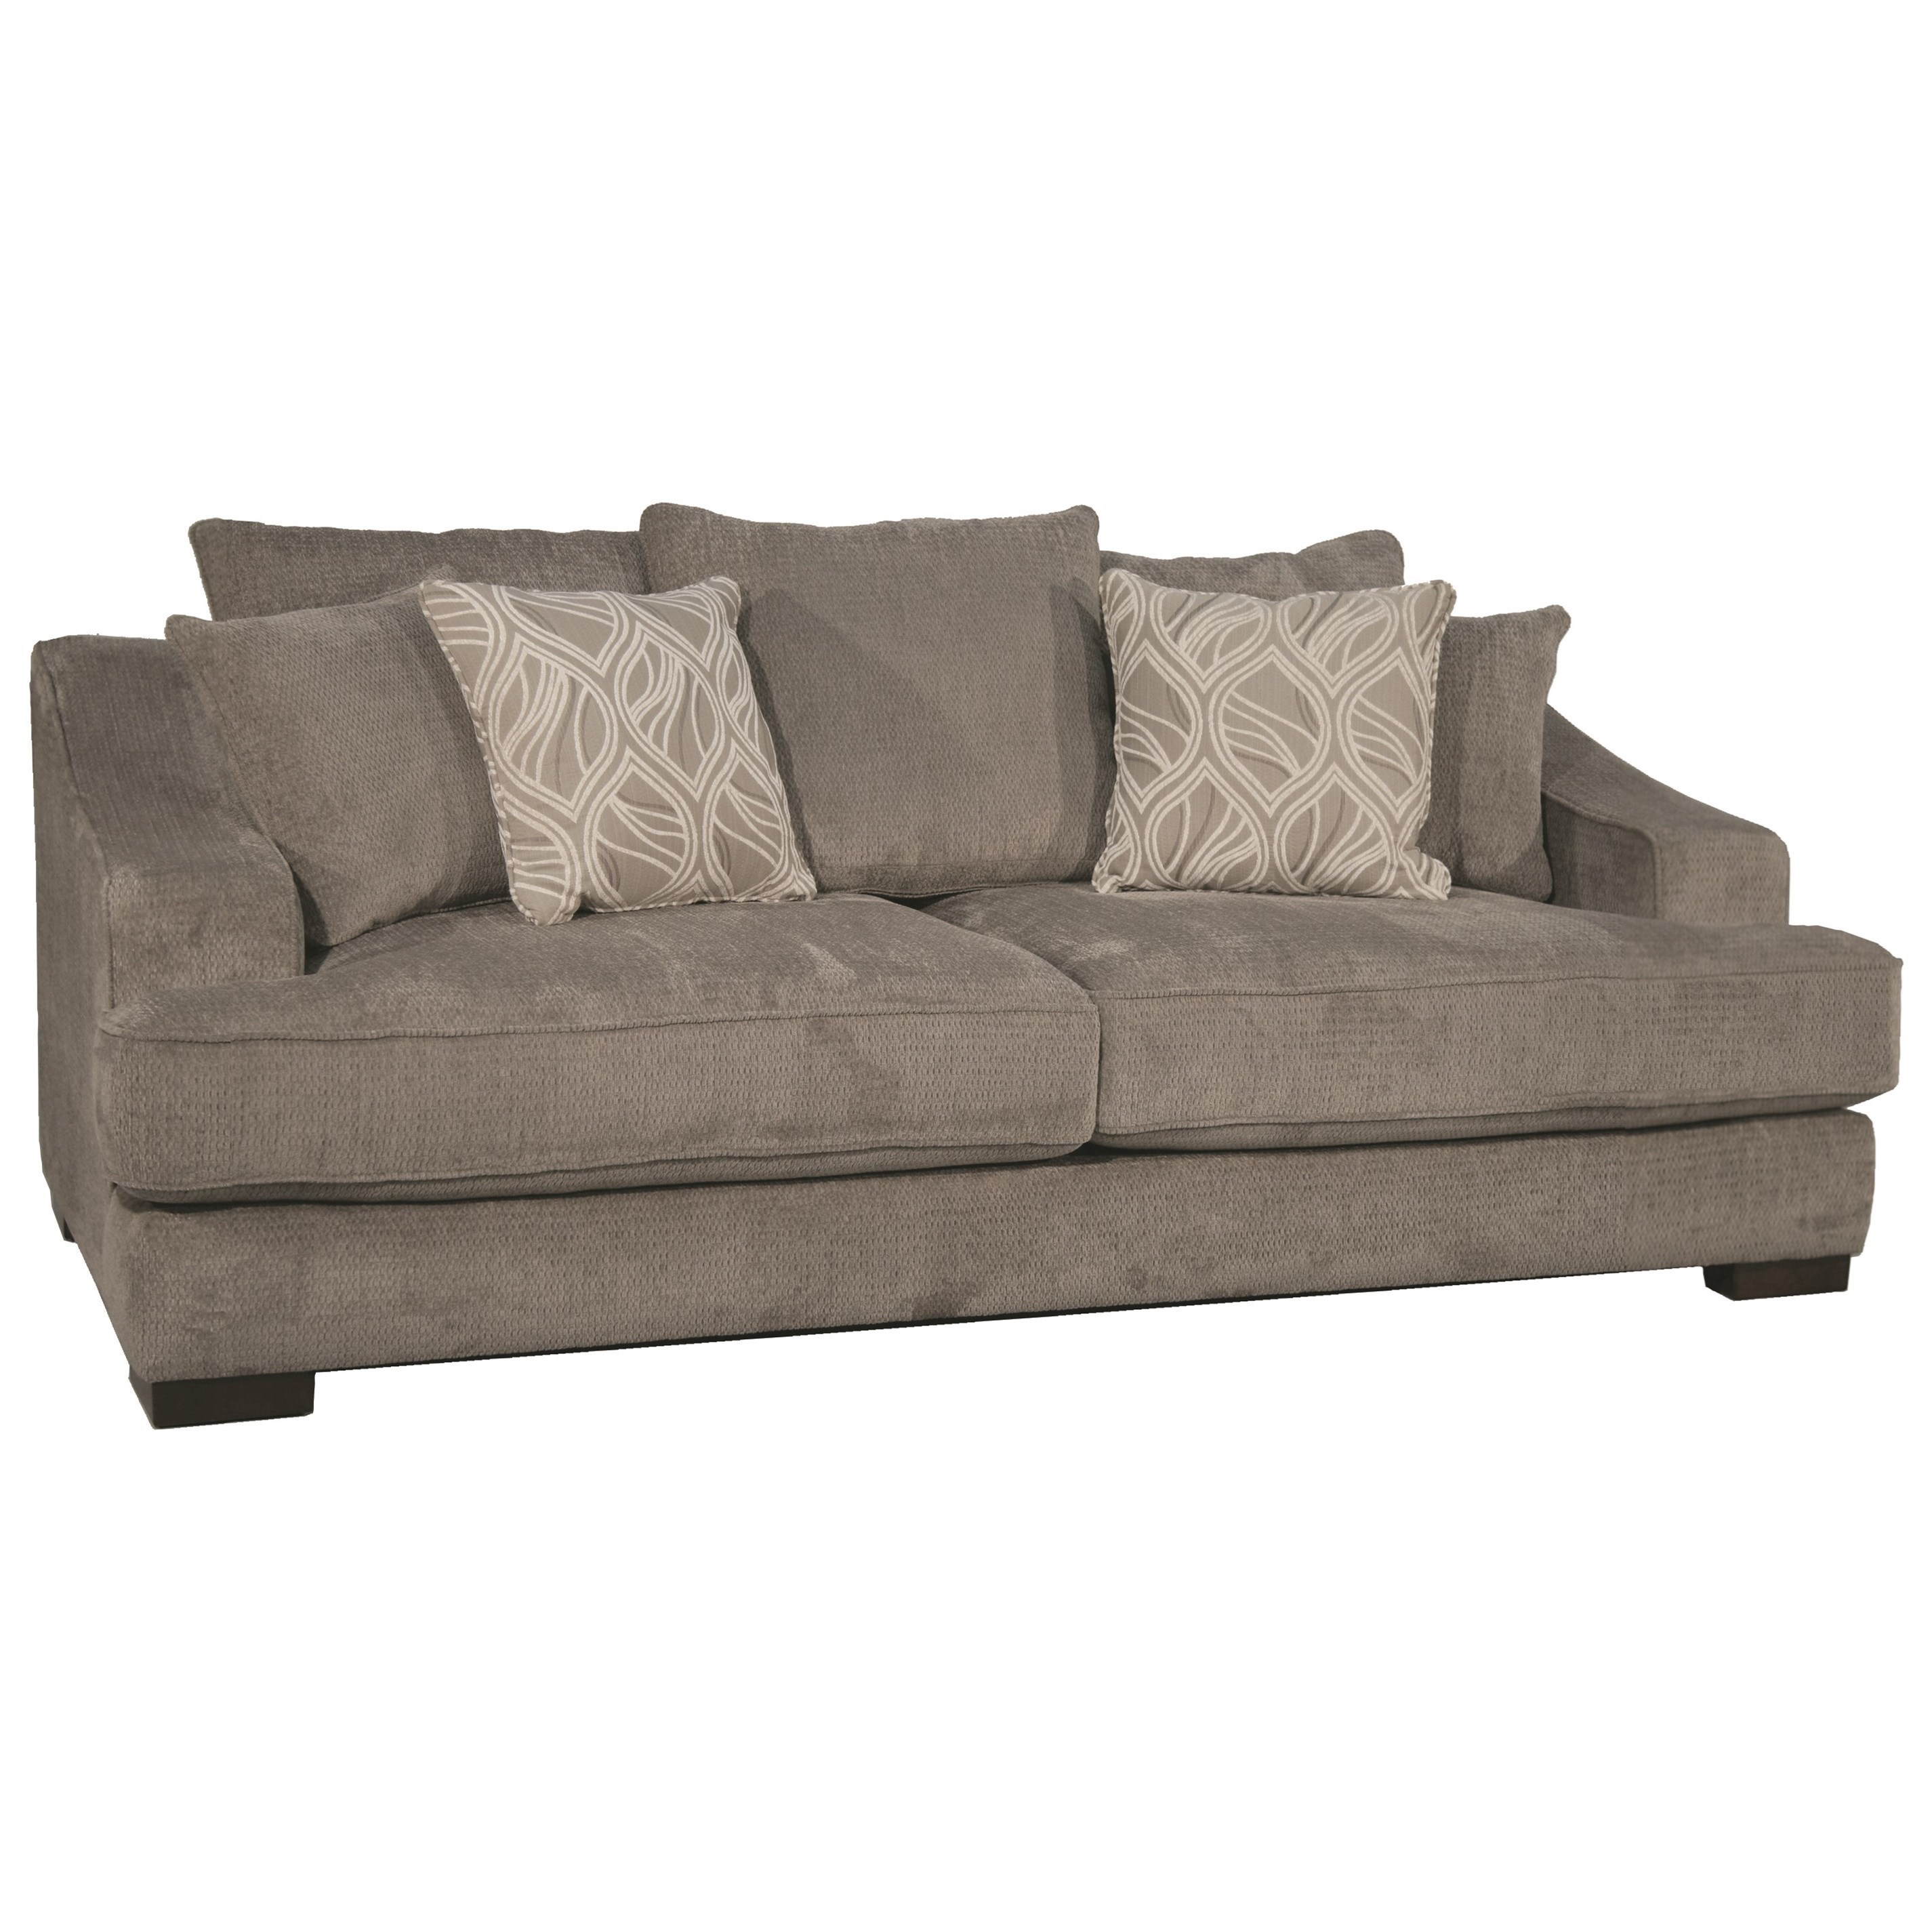 Fairmont Designs AvalonCasual Sofa ...